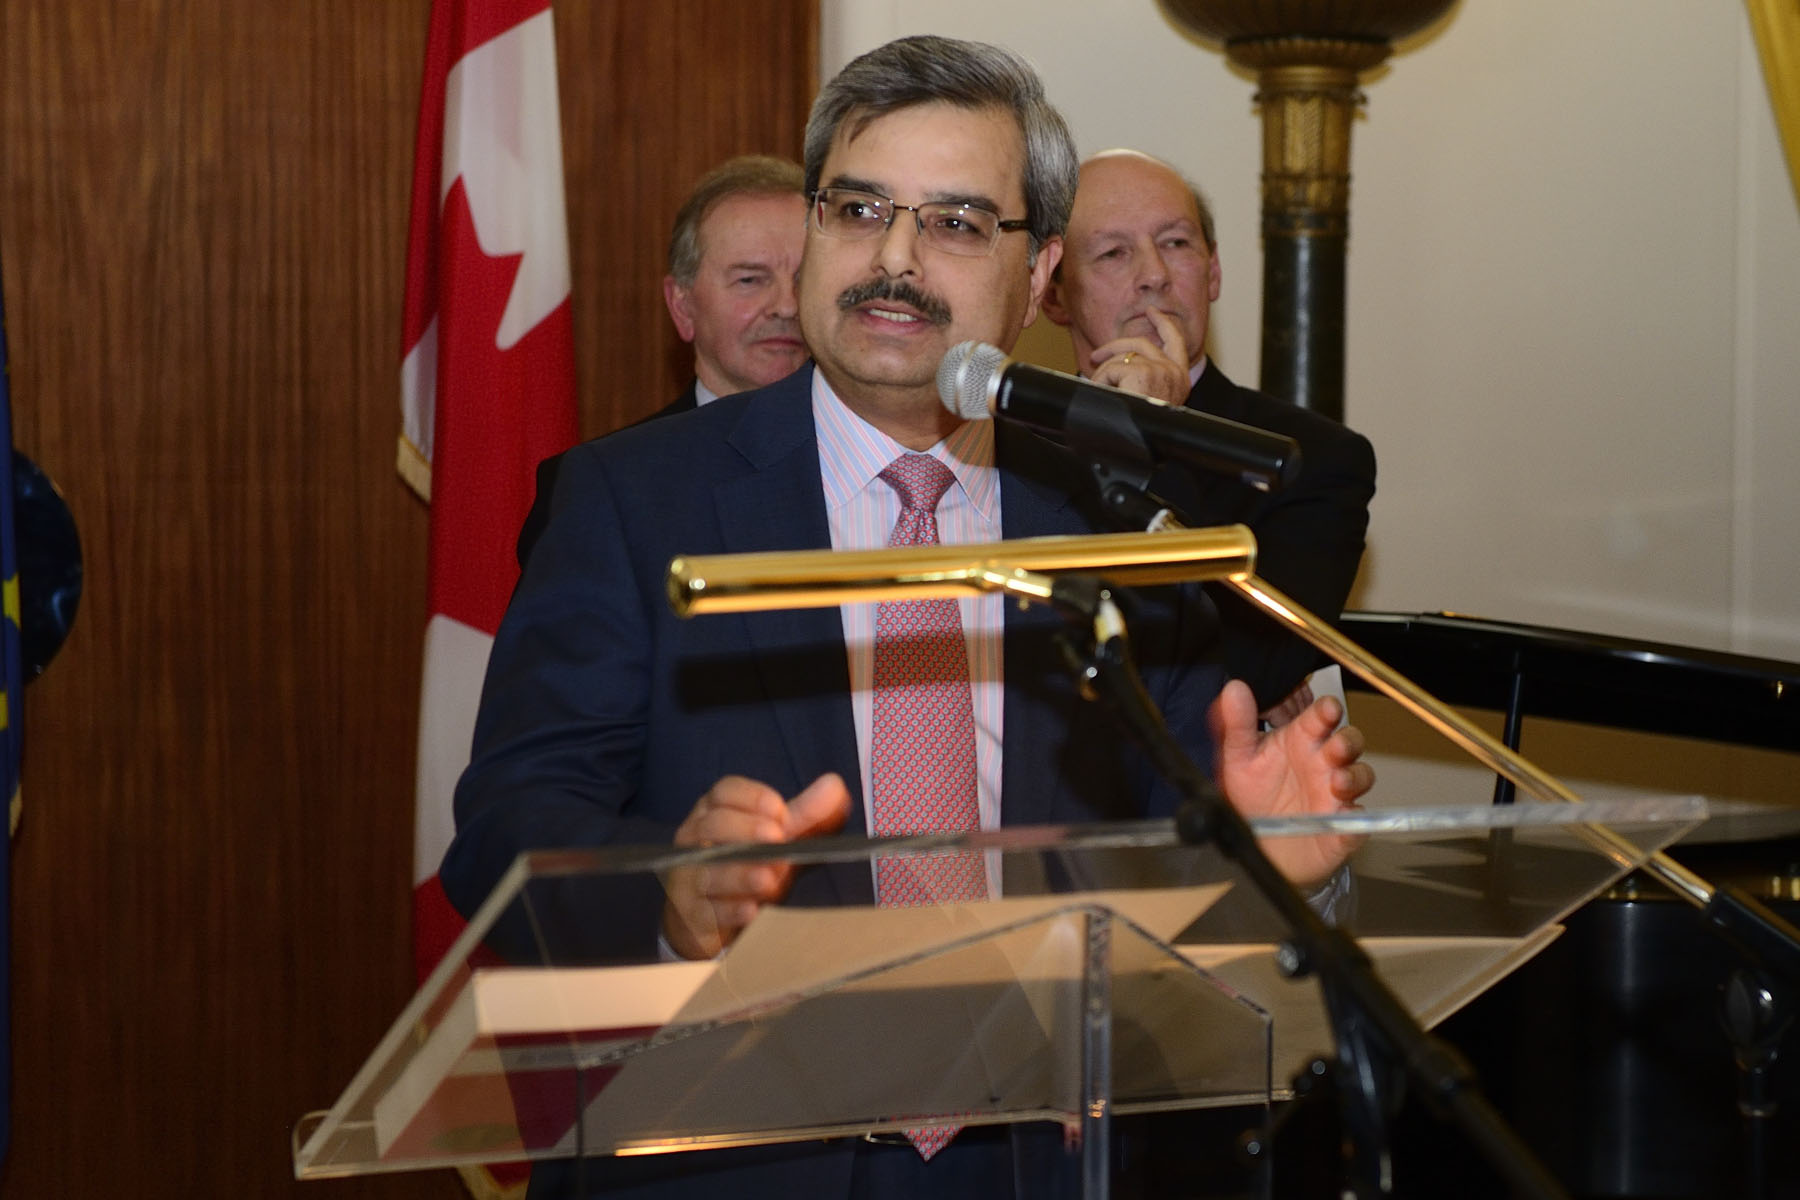 Mr. Deepak Chopra, President and CEO of Canada Post, also delivered remarks.